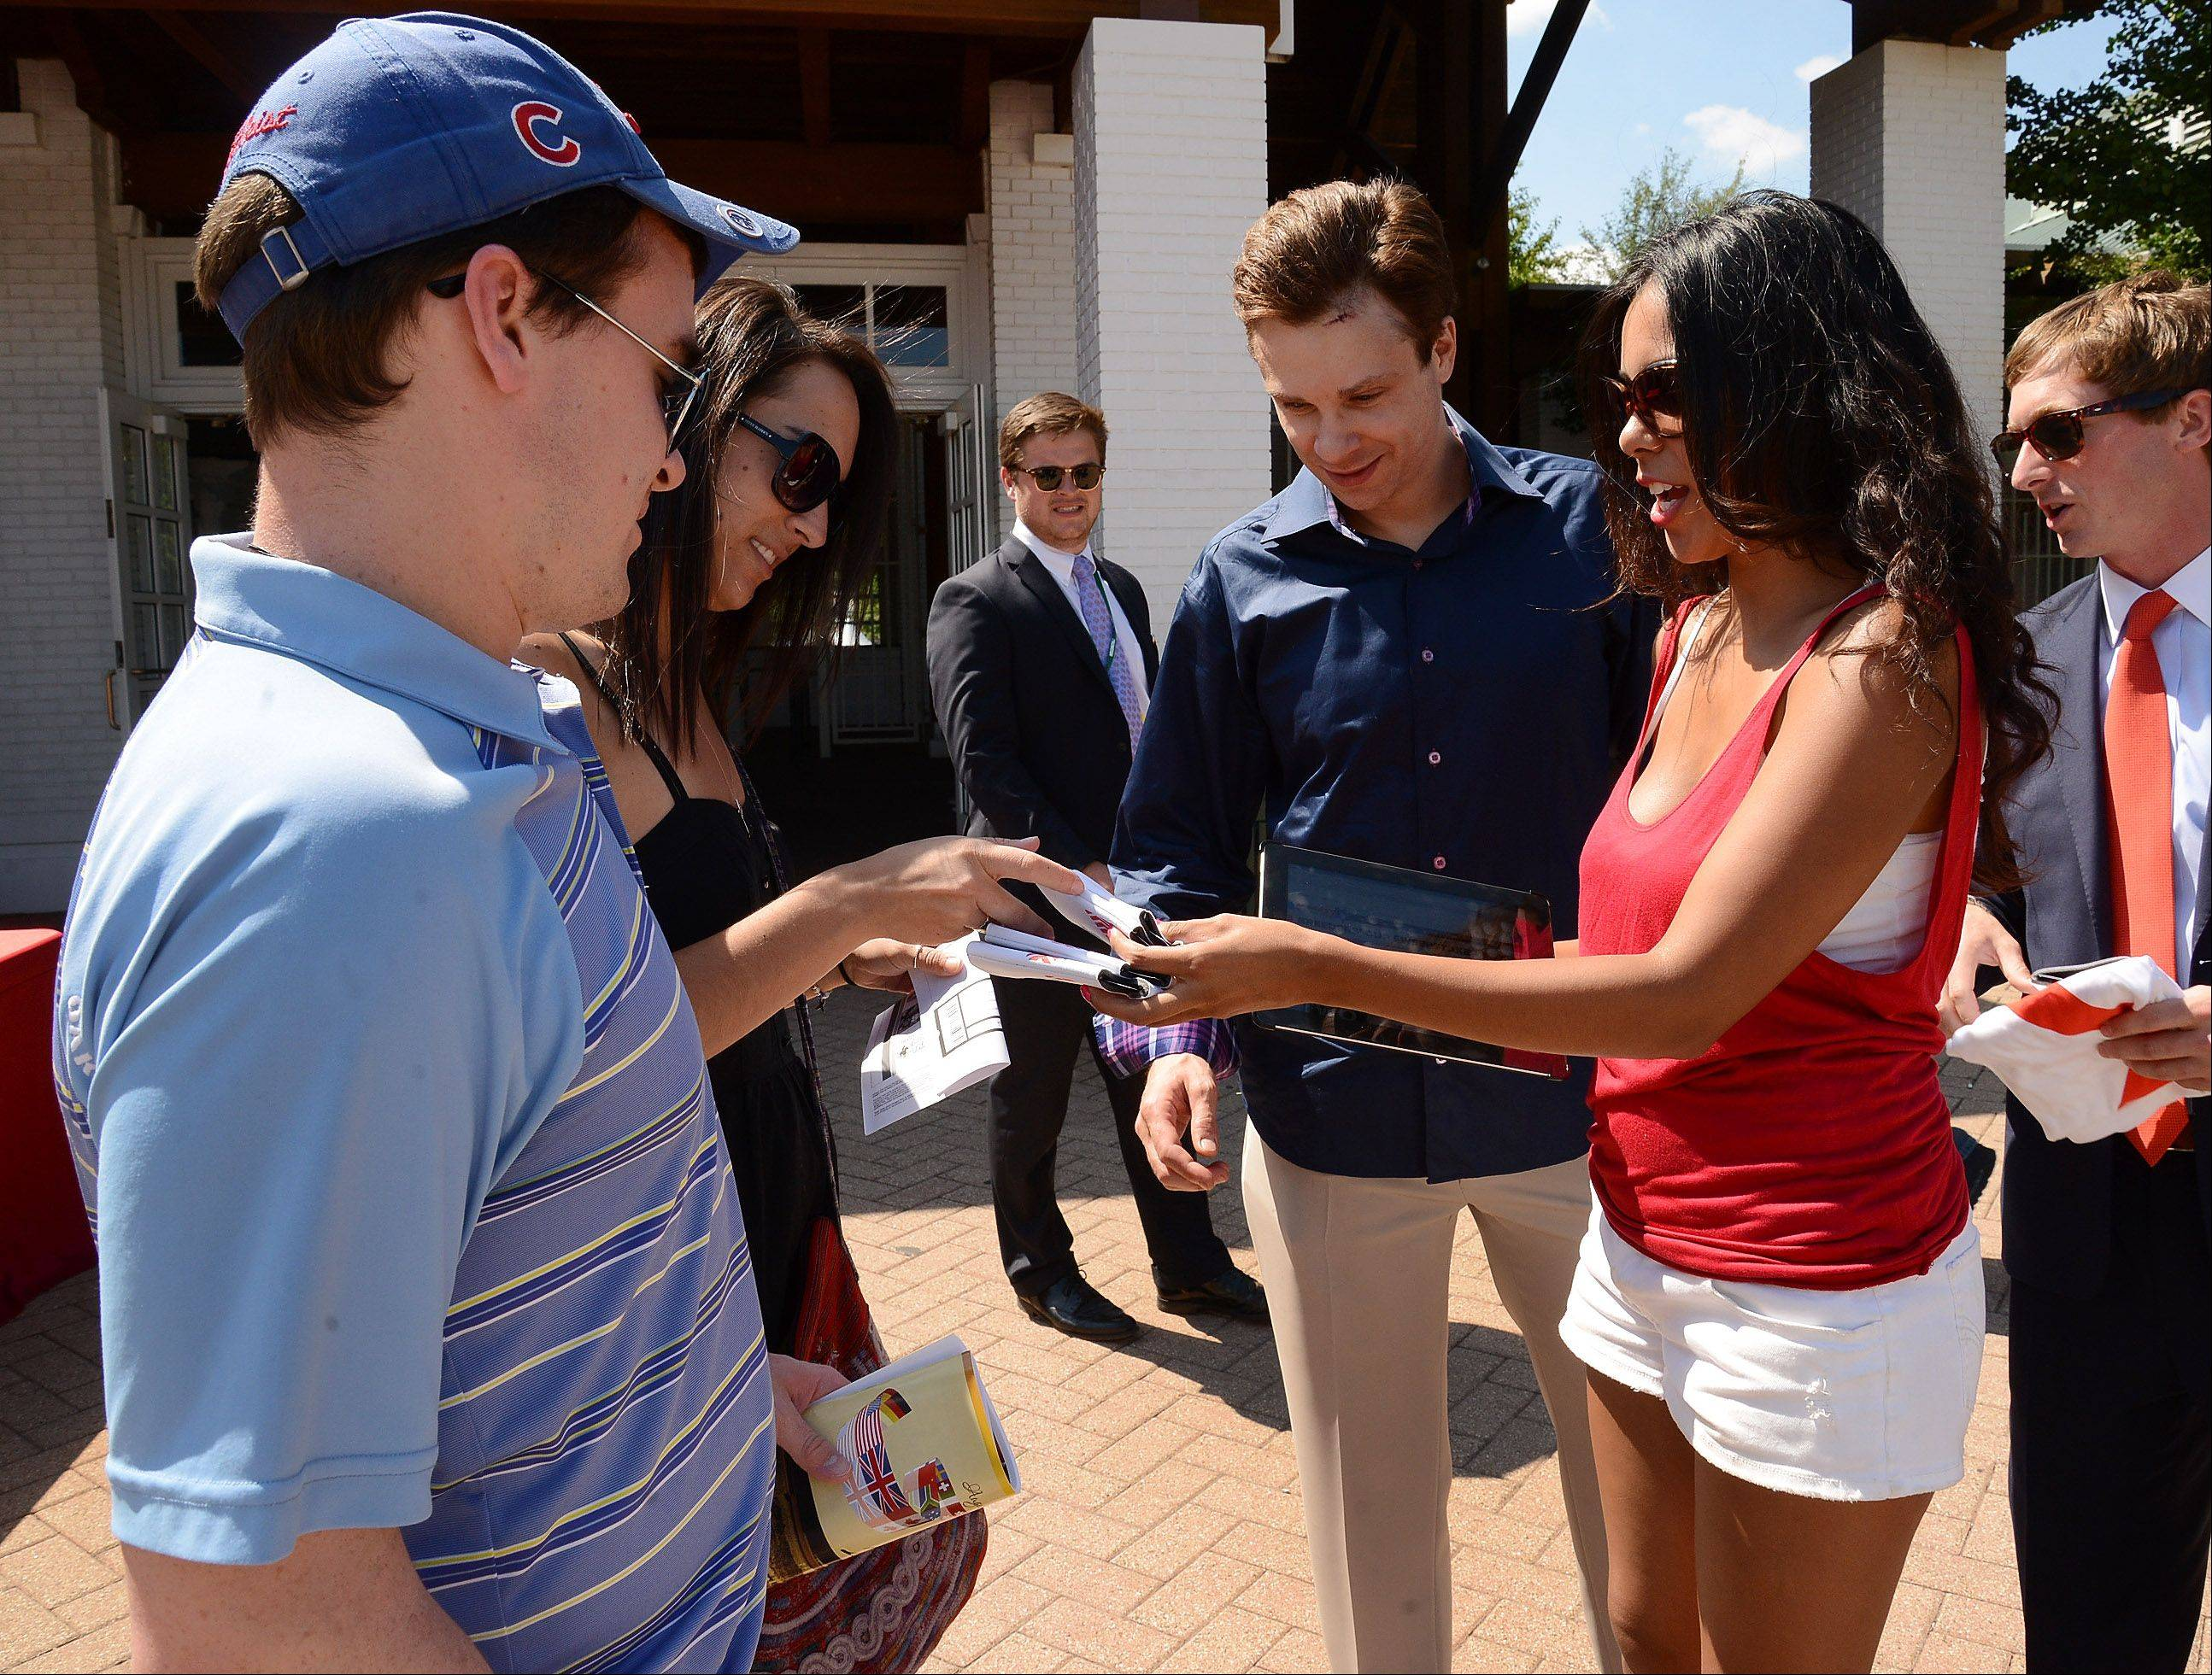 America's Best Racing Ambassador Vanessa Ceron of Elgin hands out gifts to, from left, Mark Lennon, Jill Hackmaster and Scott Youngren, all of Chicago, at the Arlington International Festival of Racing at Arlington International Racecourse on Saturday.